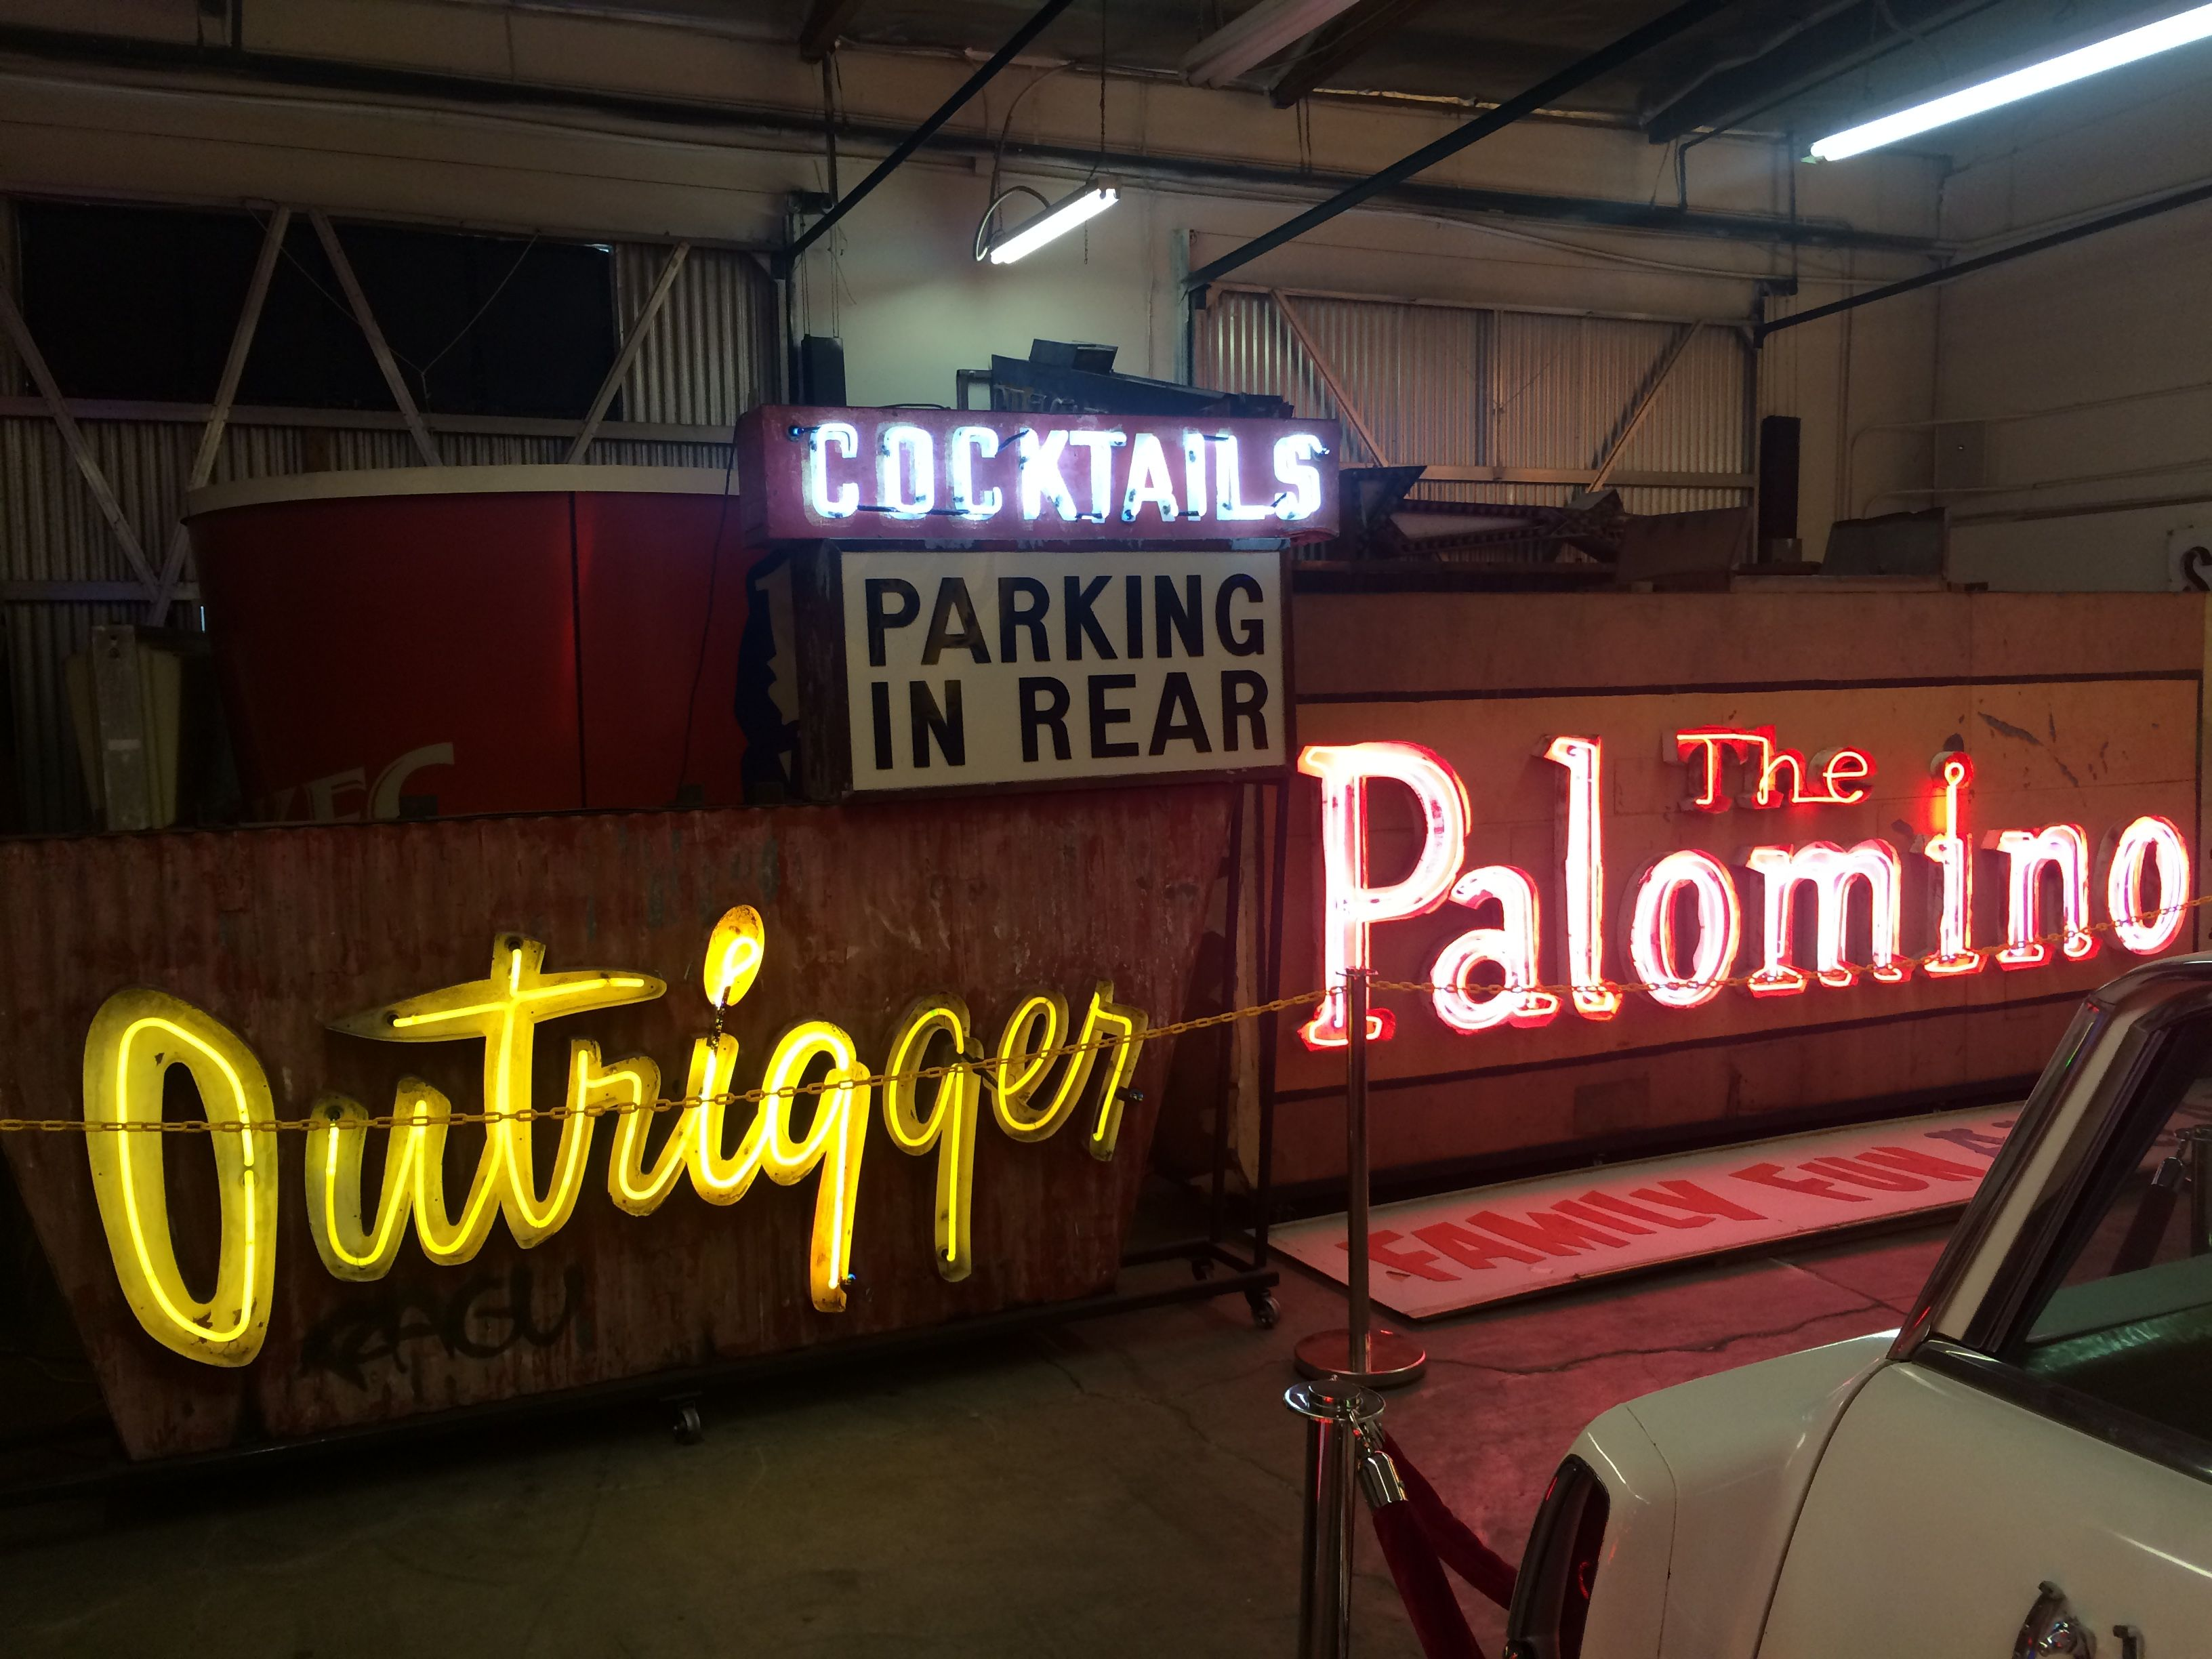 Beloved neon signs from years gone by at The Valley Relics Museum (photo by Nikki Kreuzer)